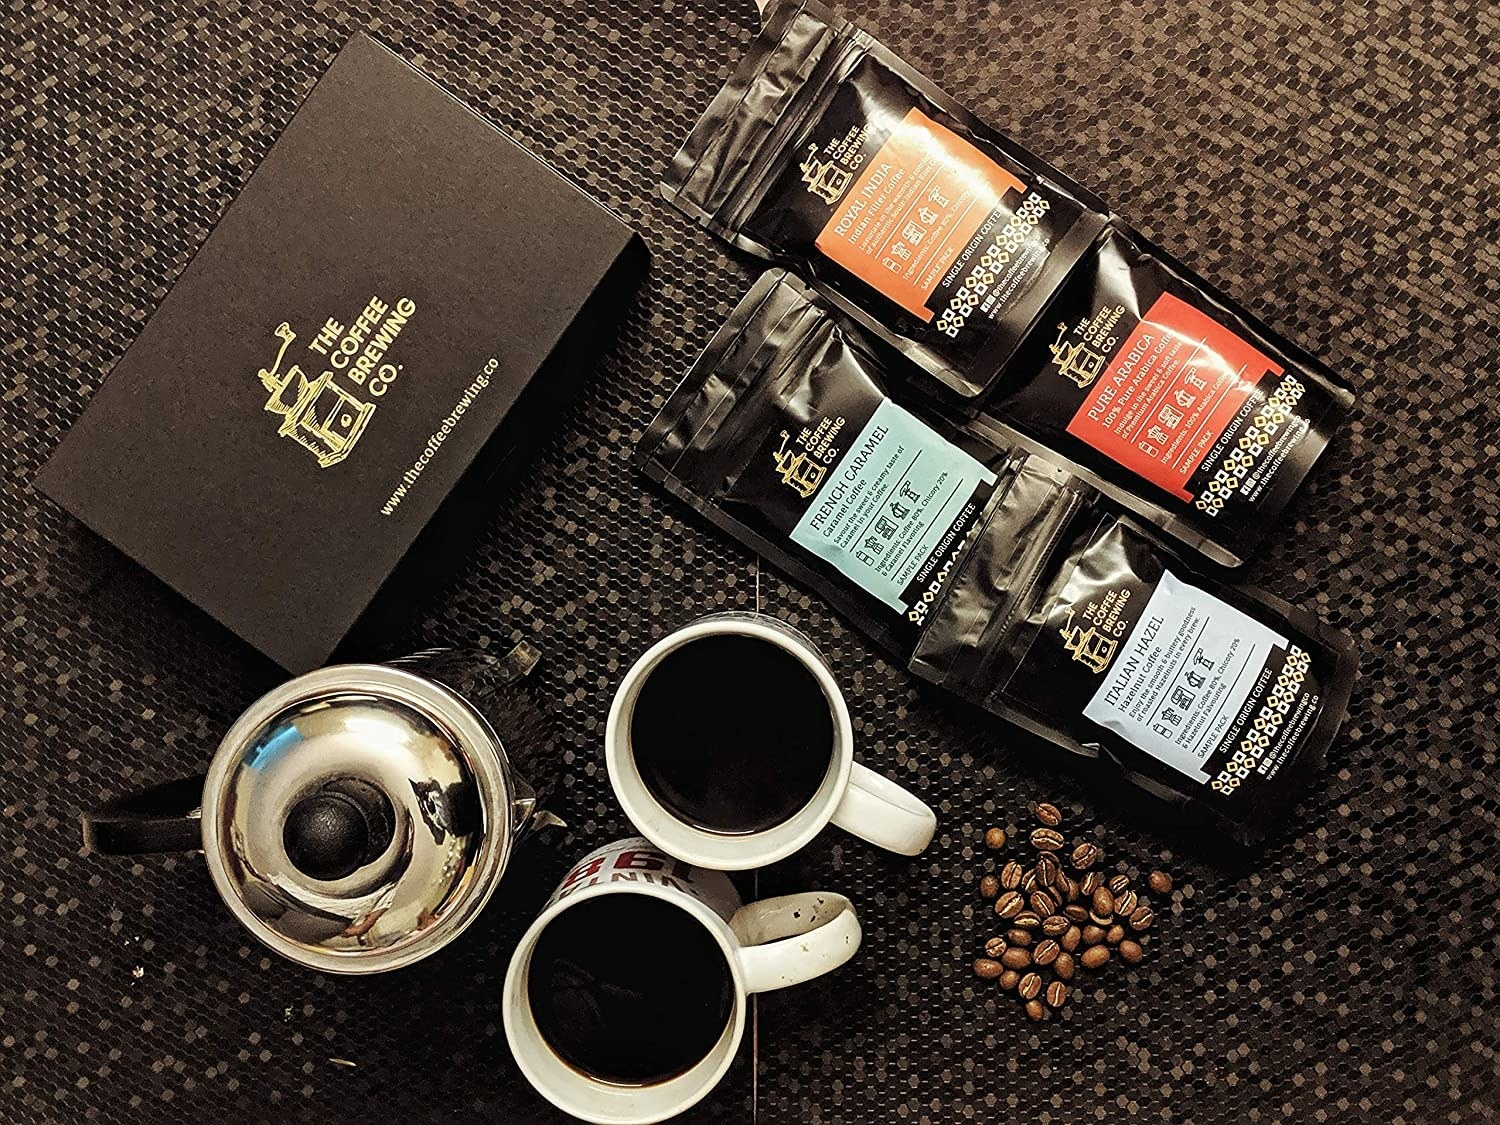 A coffee brewing kit